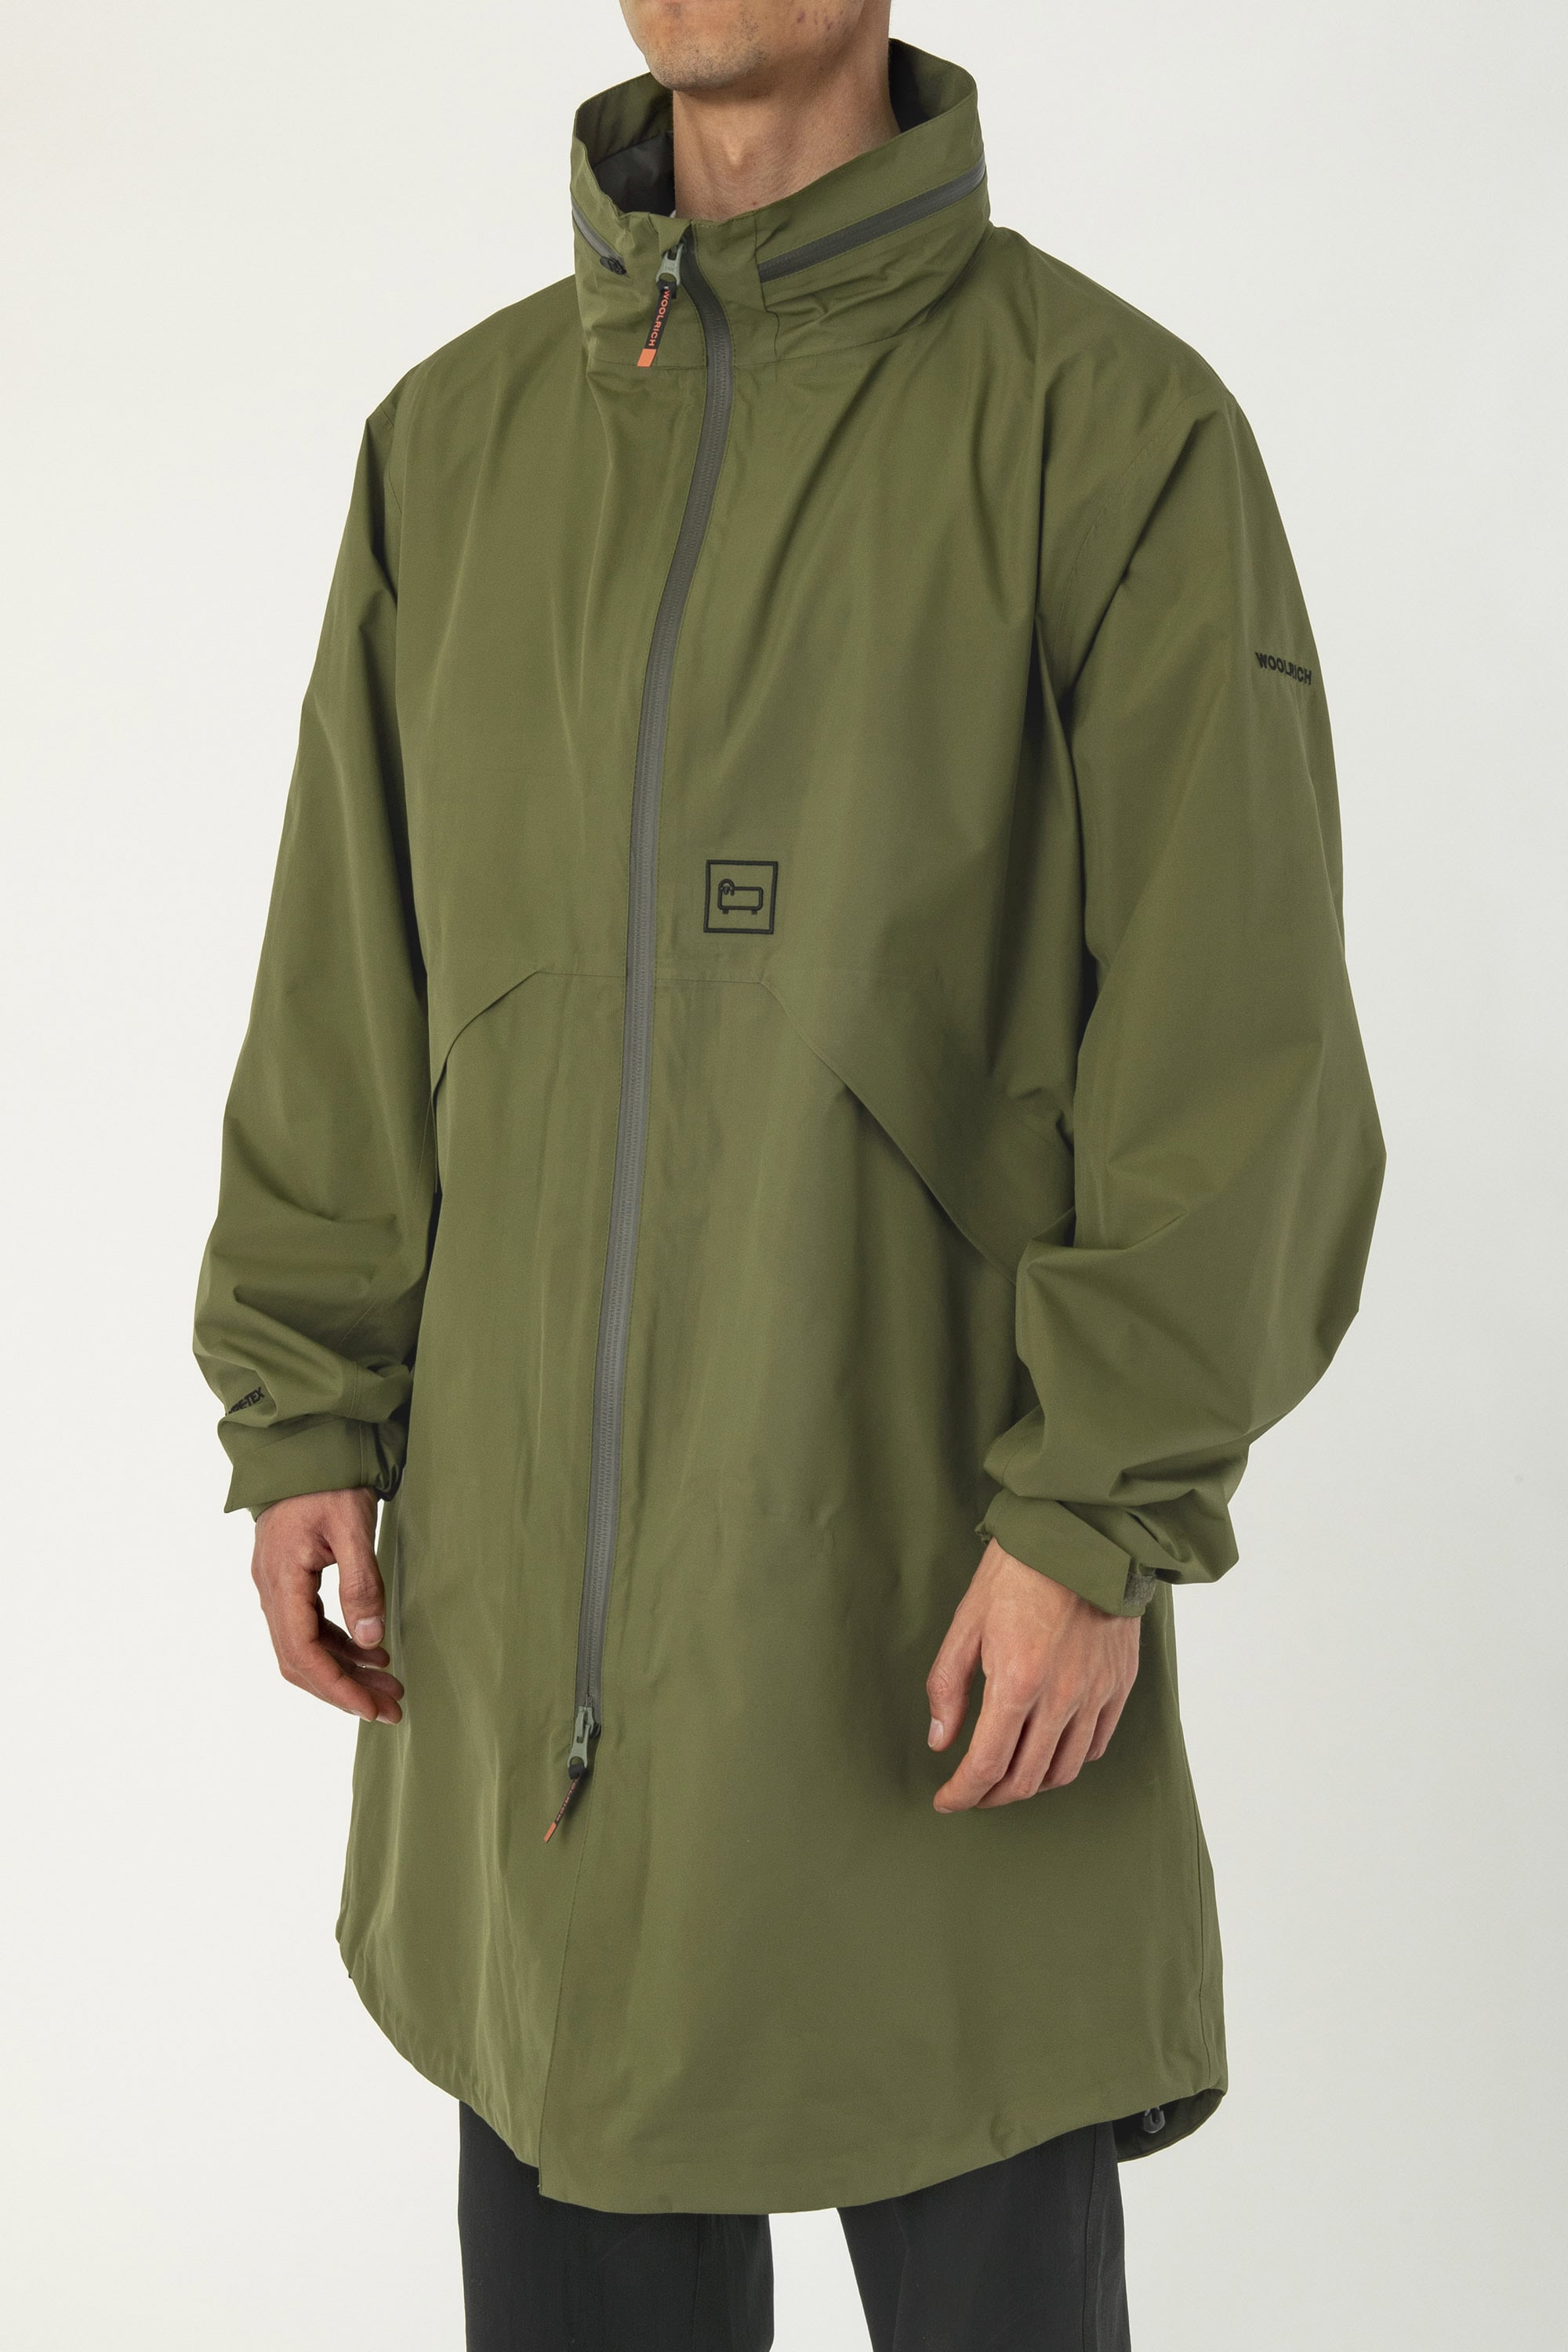 GTX RICH'S TRAIL COAT